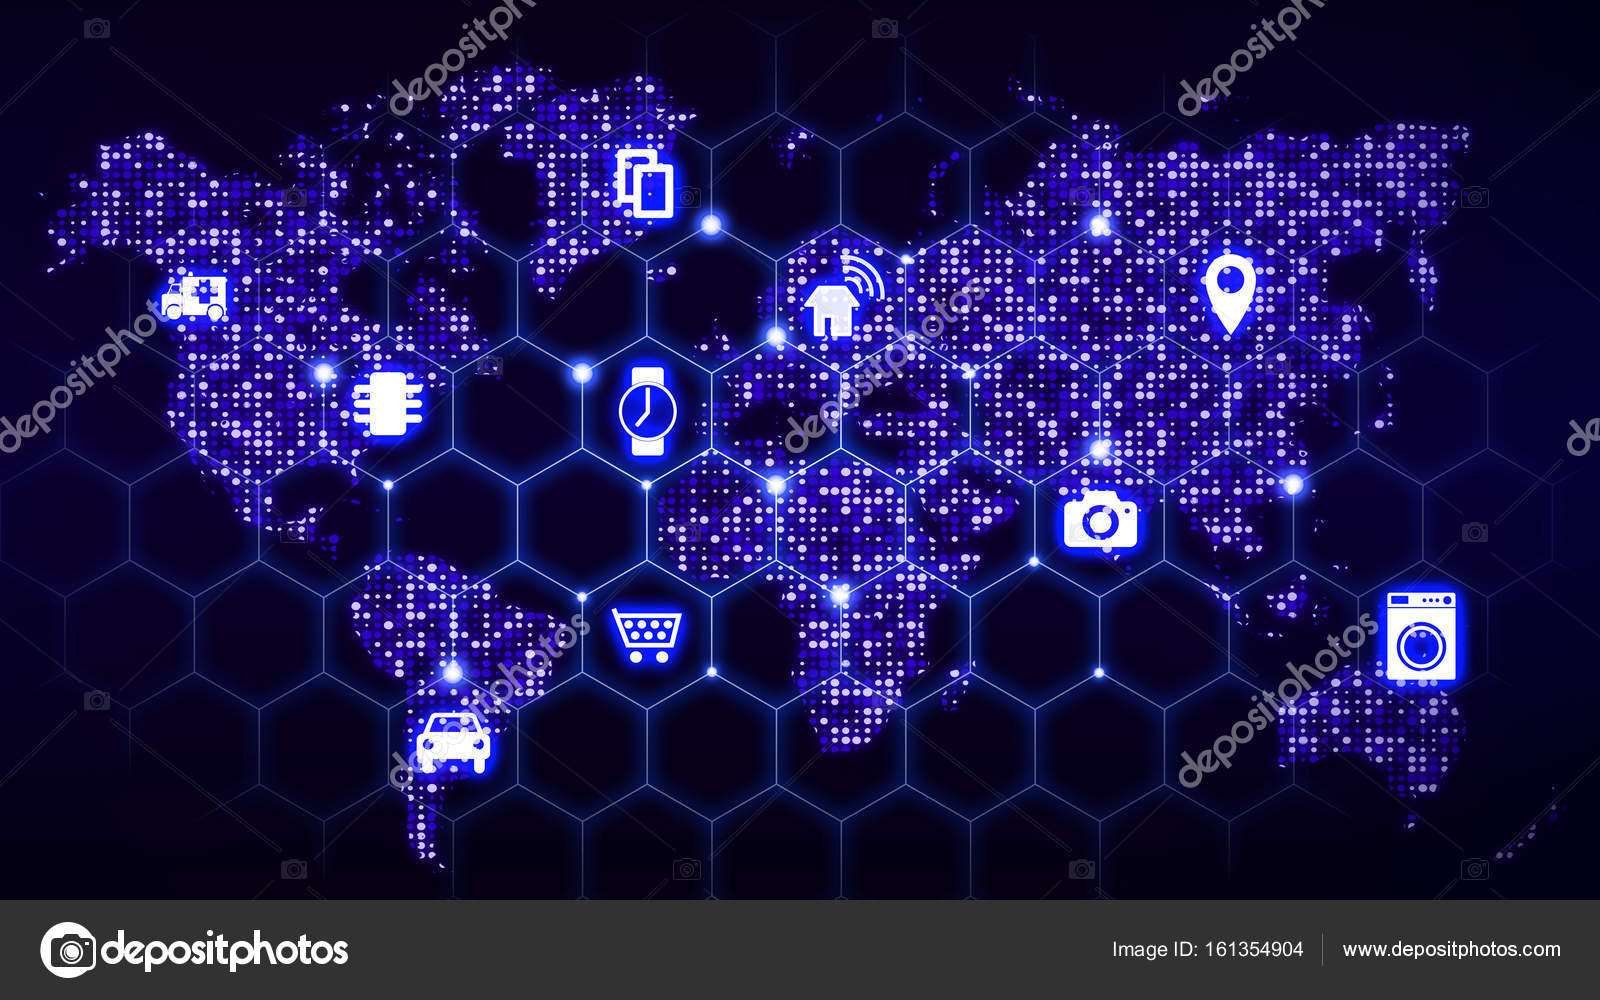 Iot world map hexagon grid internet of things concept stock photo iot world map hexagon grid internet of things concept stock photo gumiabroncs Gallery